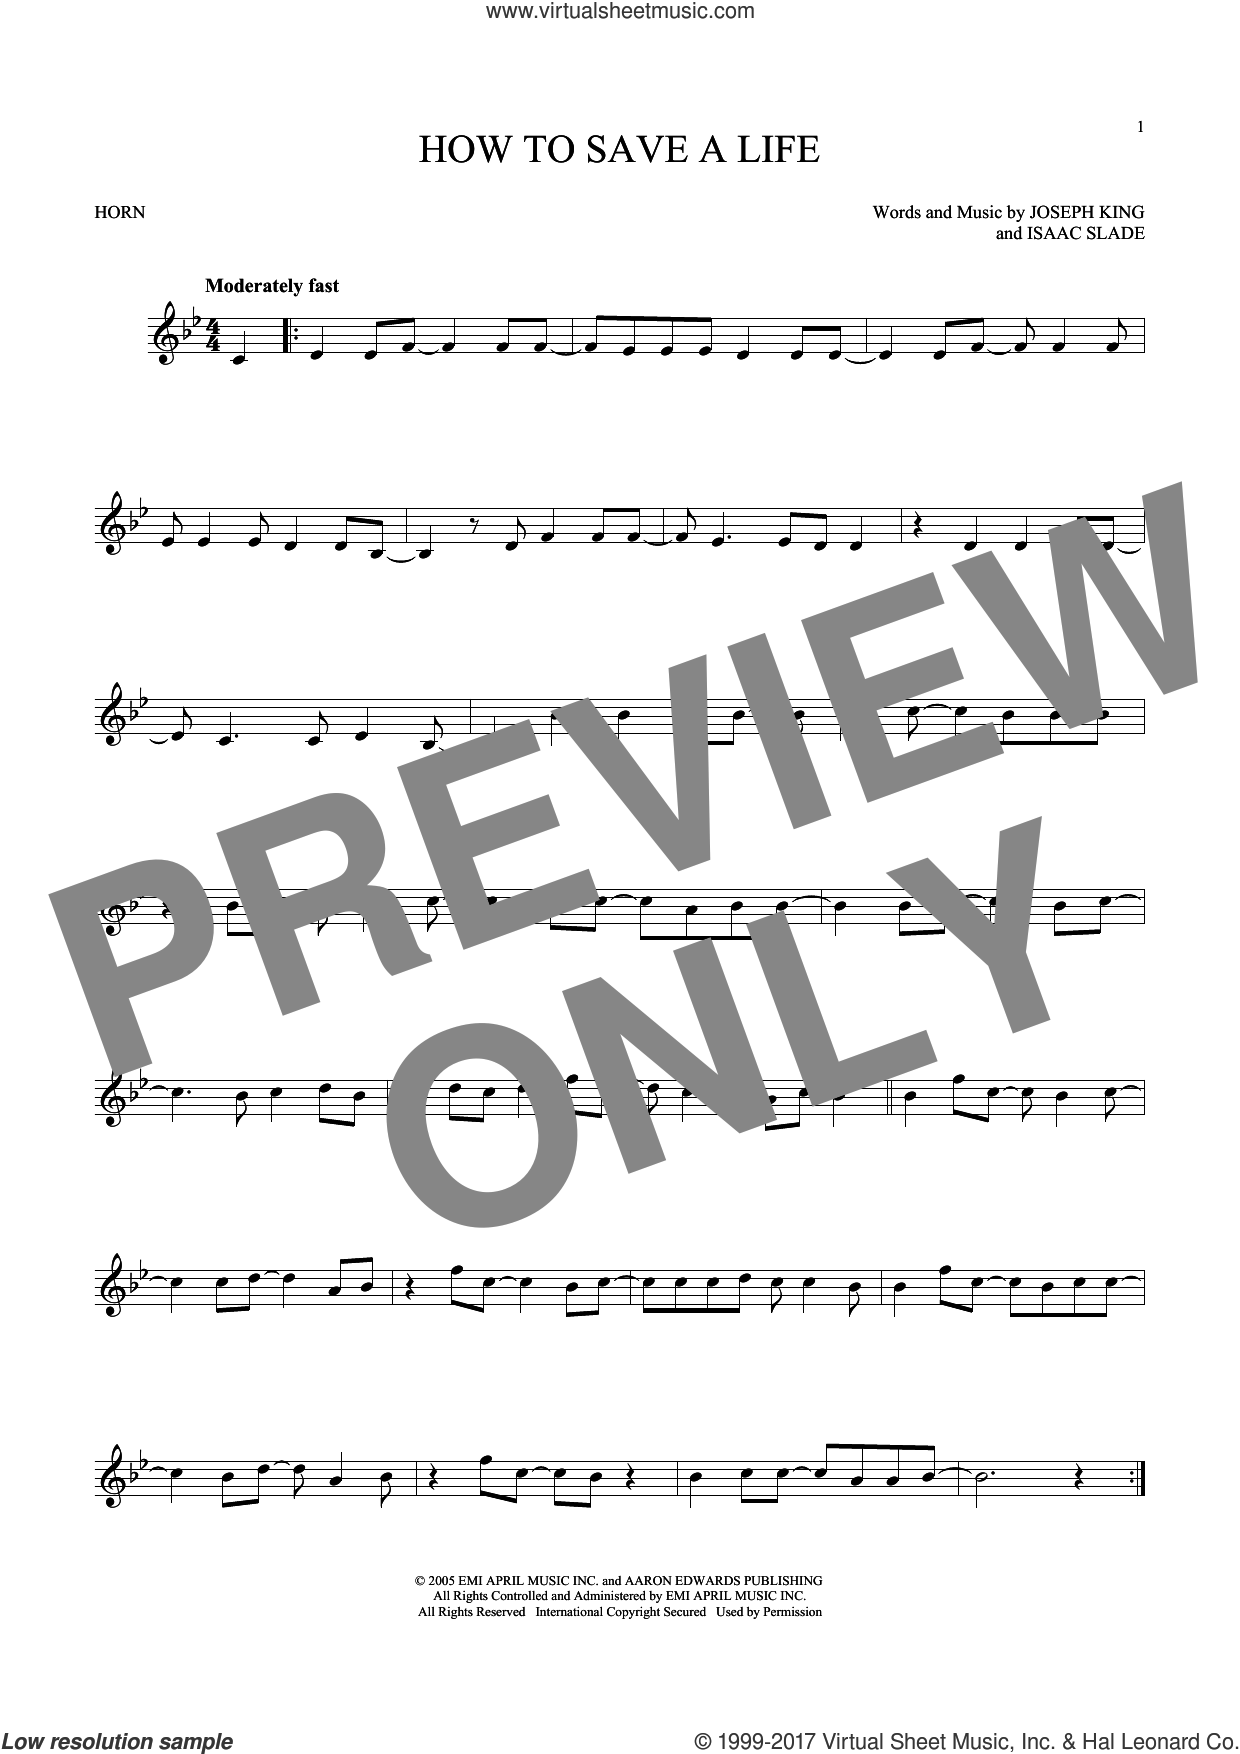 How To Save A Life sheet music for horn solo by The Fray, Isaac Slade and Joseph King, intermediate skill level